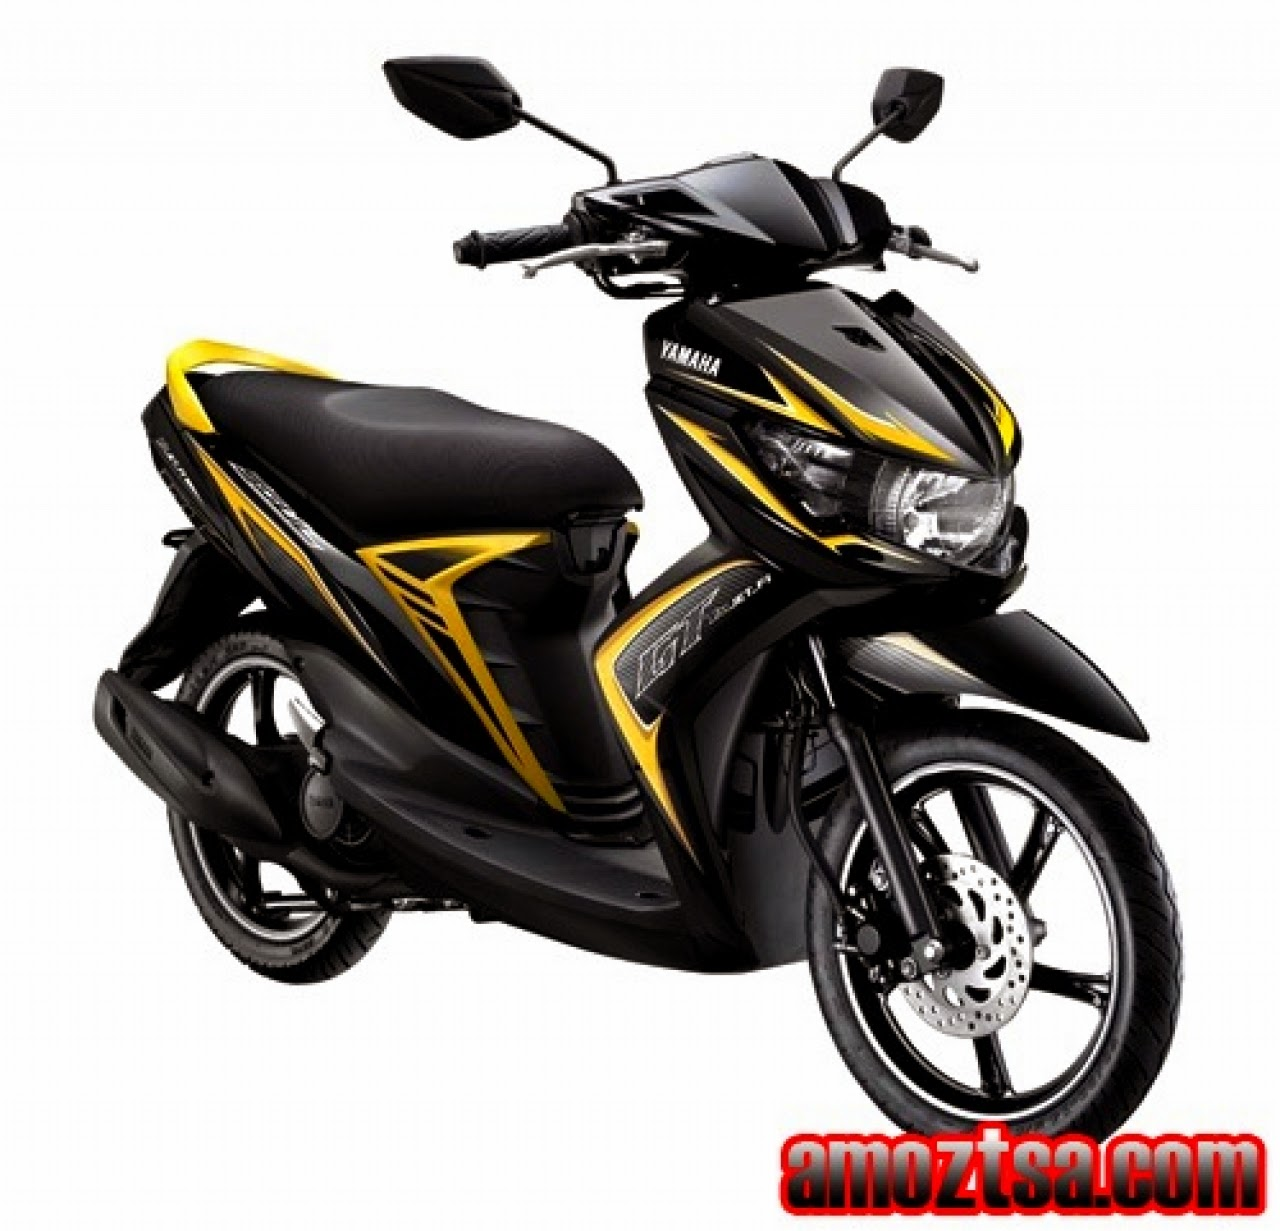 Foto Modif Yamaha Mio Soul Gt 2013 Wallpaper Modifikasi Motor